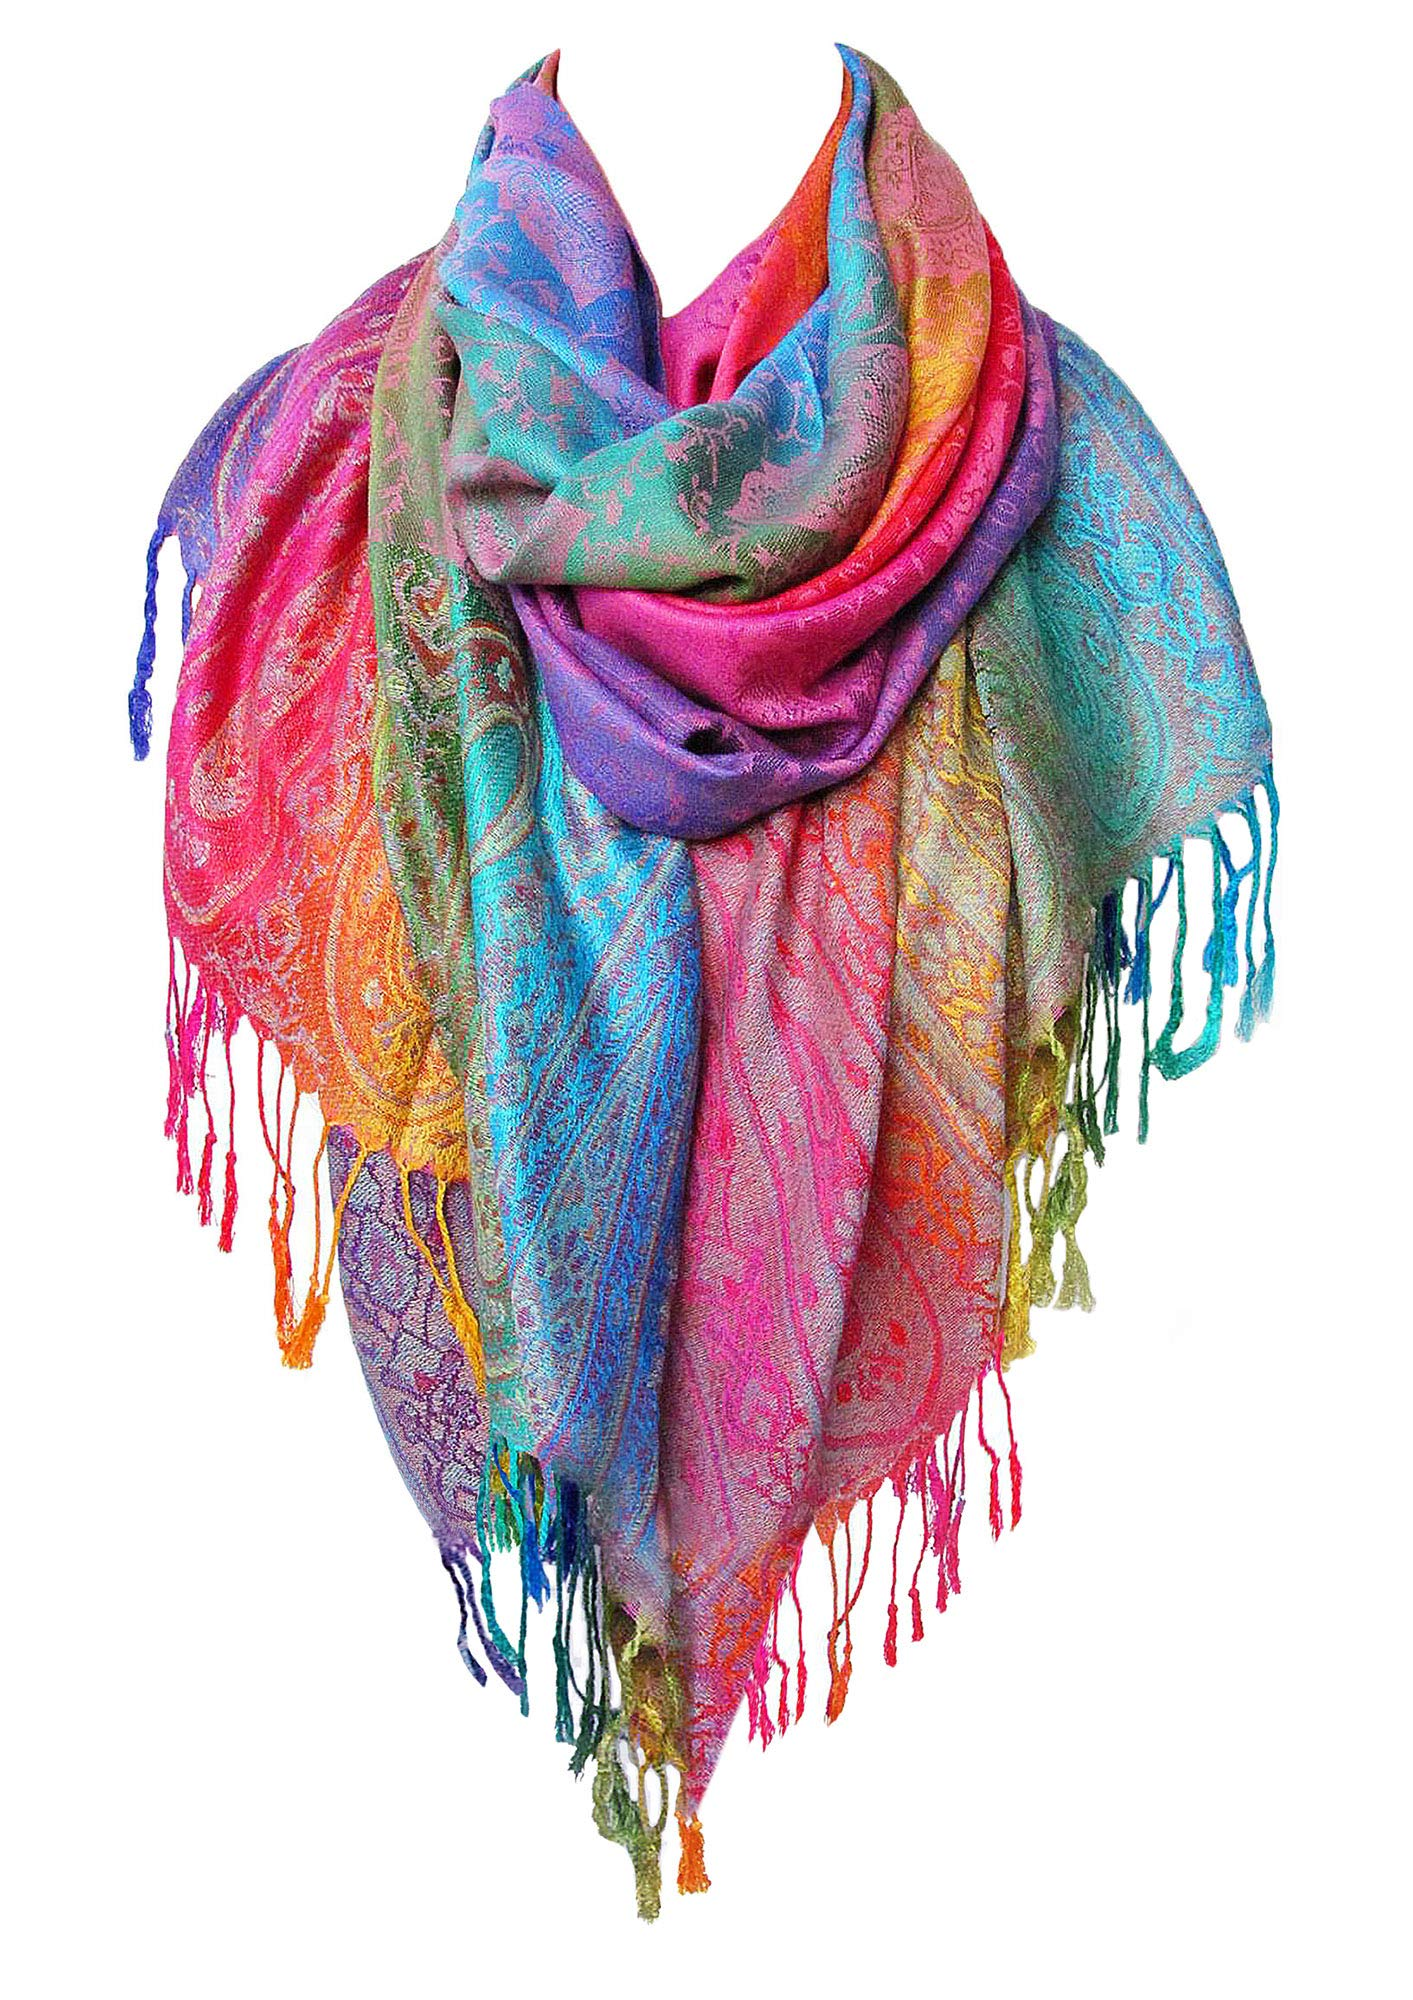 Rainbow Scarf for Women | Pashmina Scarfs for Women | Pashmina Rave Scarf | Colorful Scarfs For Women | Real Pashmina Shawls Wraps | Womens Scarfs and Wraps Lightweight - By Aasma's Dream